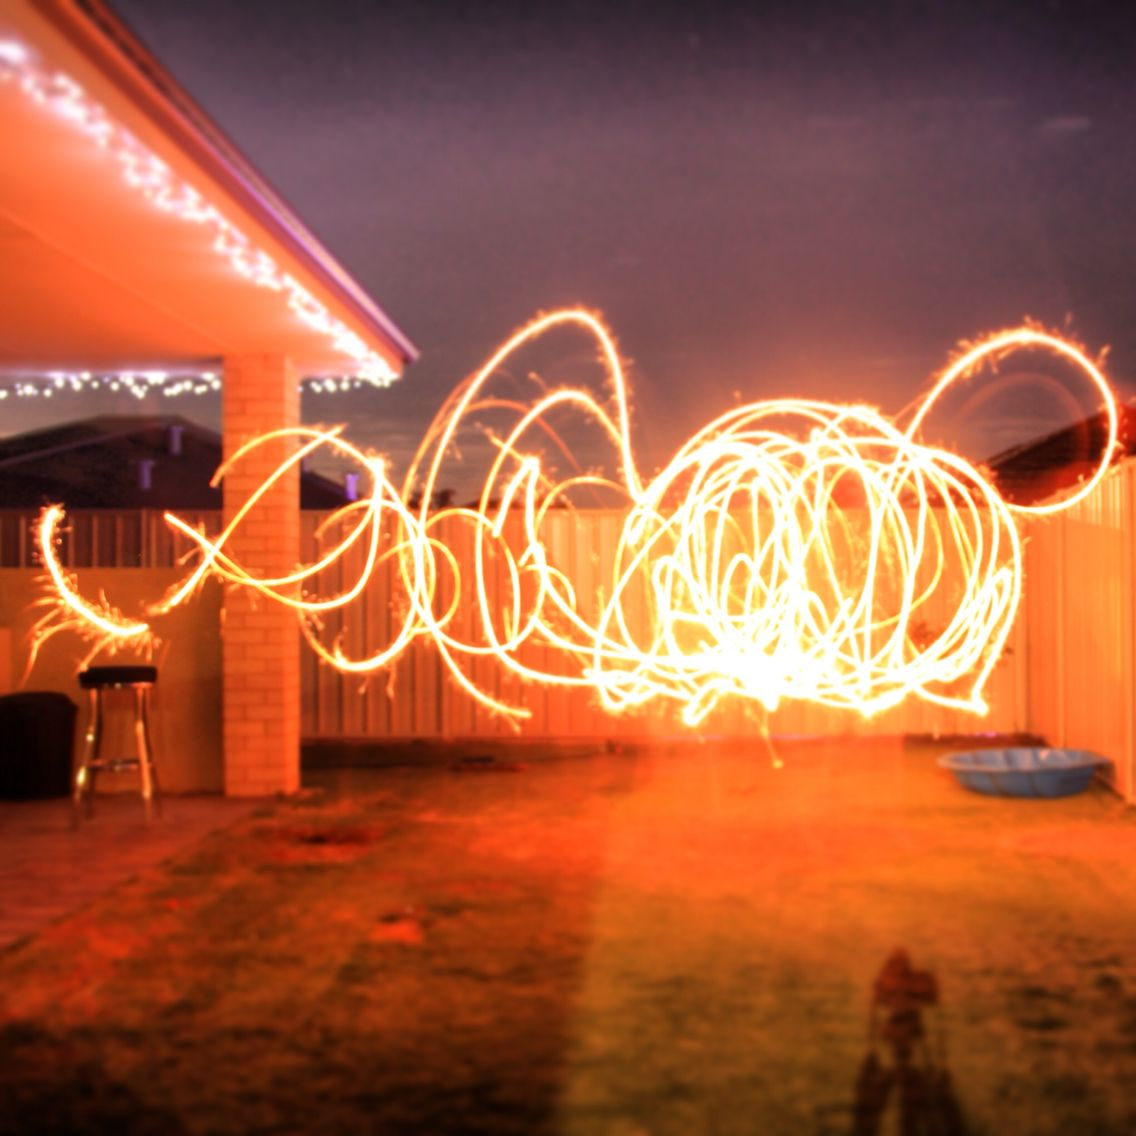 15sec open shutter, with my fiancé and myself running around with sparklers.